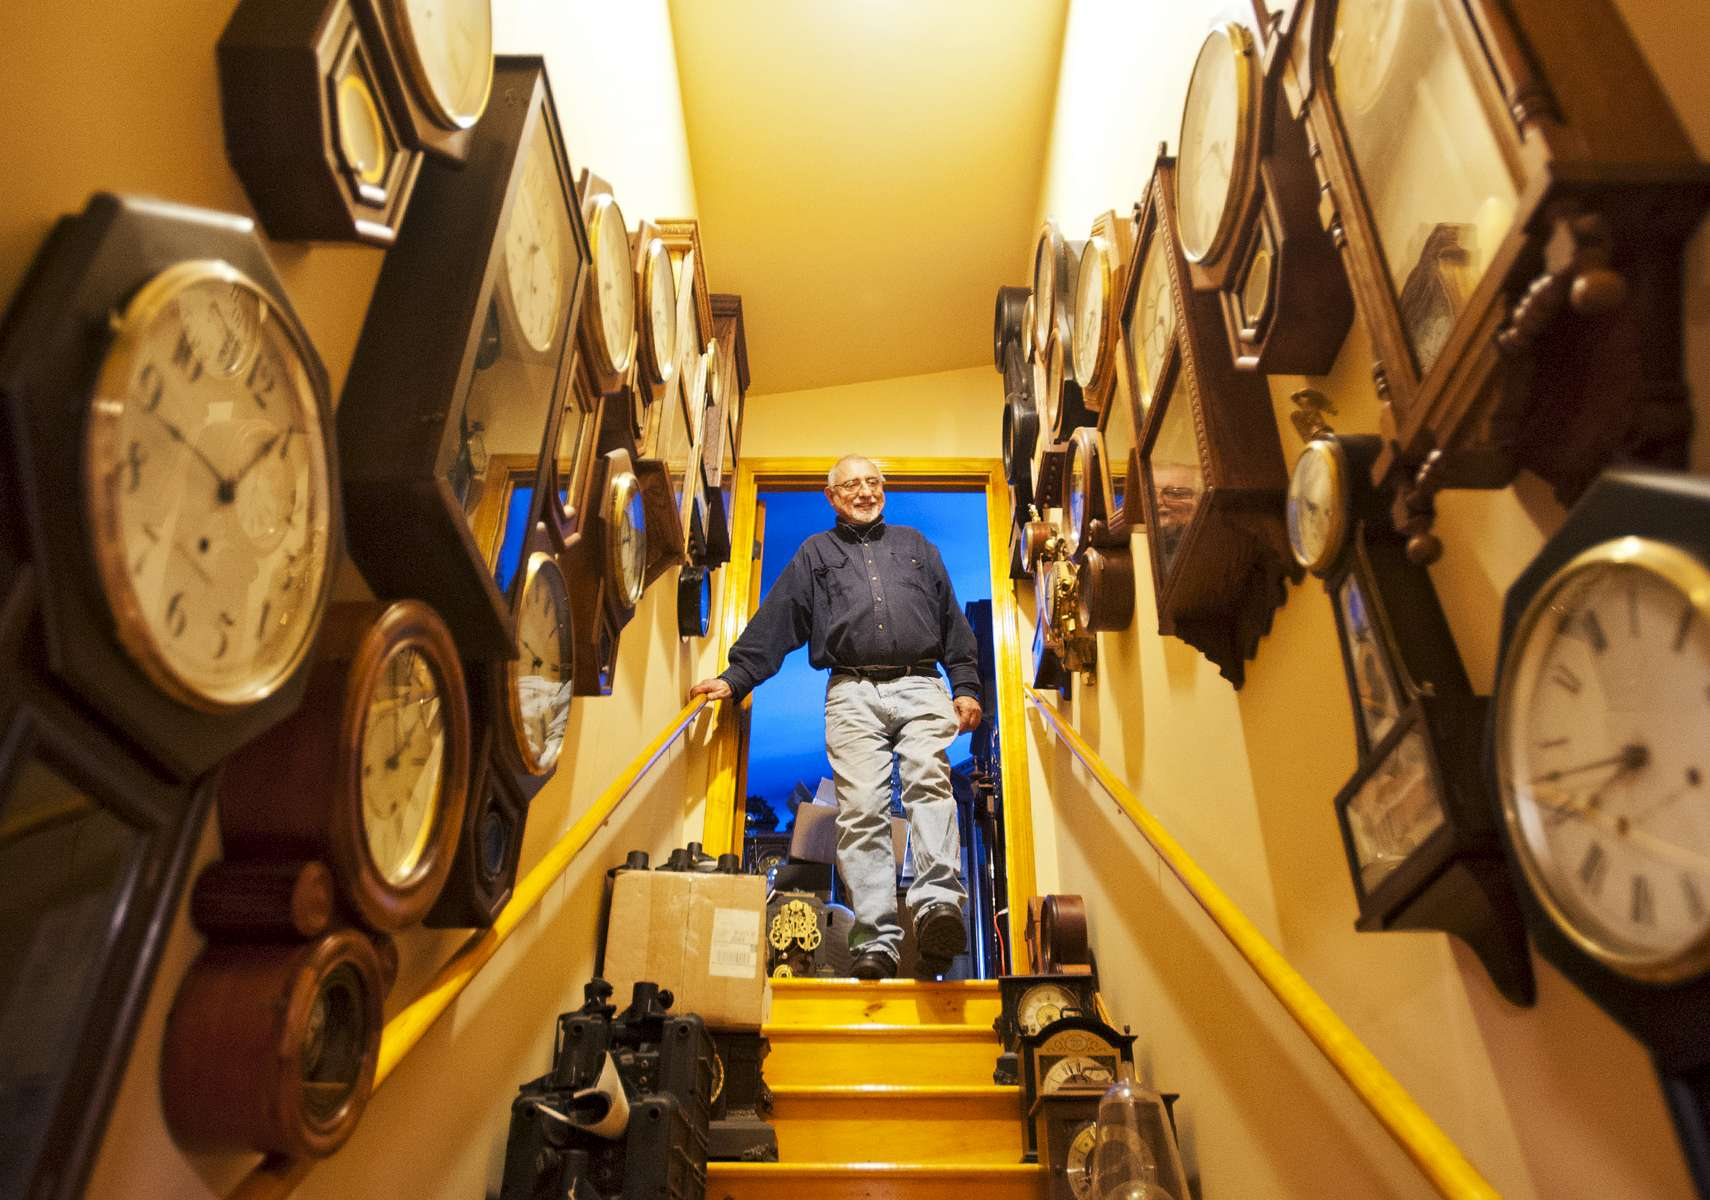 Joseph Tortorelli shows his collection of over 500 clocks at {quote}This Old Clock Shop{quote} on Friday, March 11, 2016. He said his fascination with clocks began when he was 8-years-old working the paper route. He would pass by secondhand stores and started collecting crank-up records and old clocks intrigued by the mechanical parts and sounds they made.T&G Staff/Christine Hochkeppel